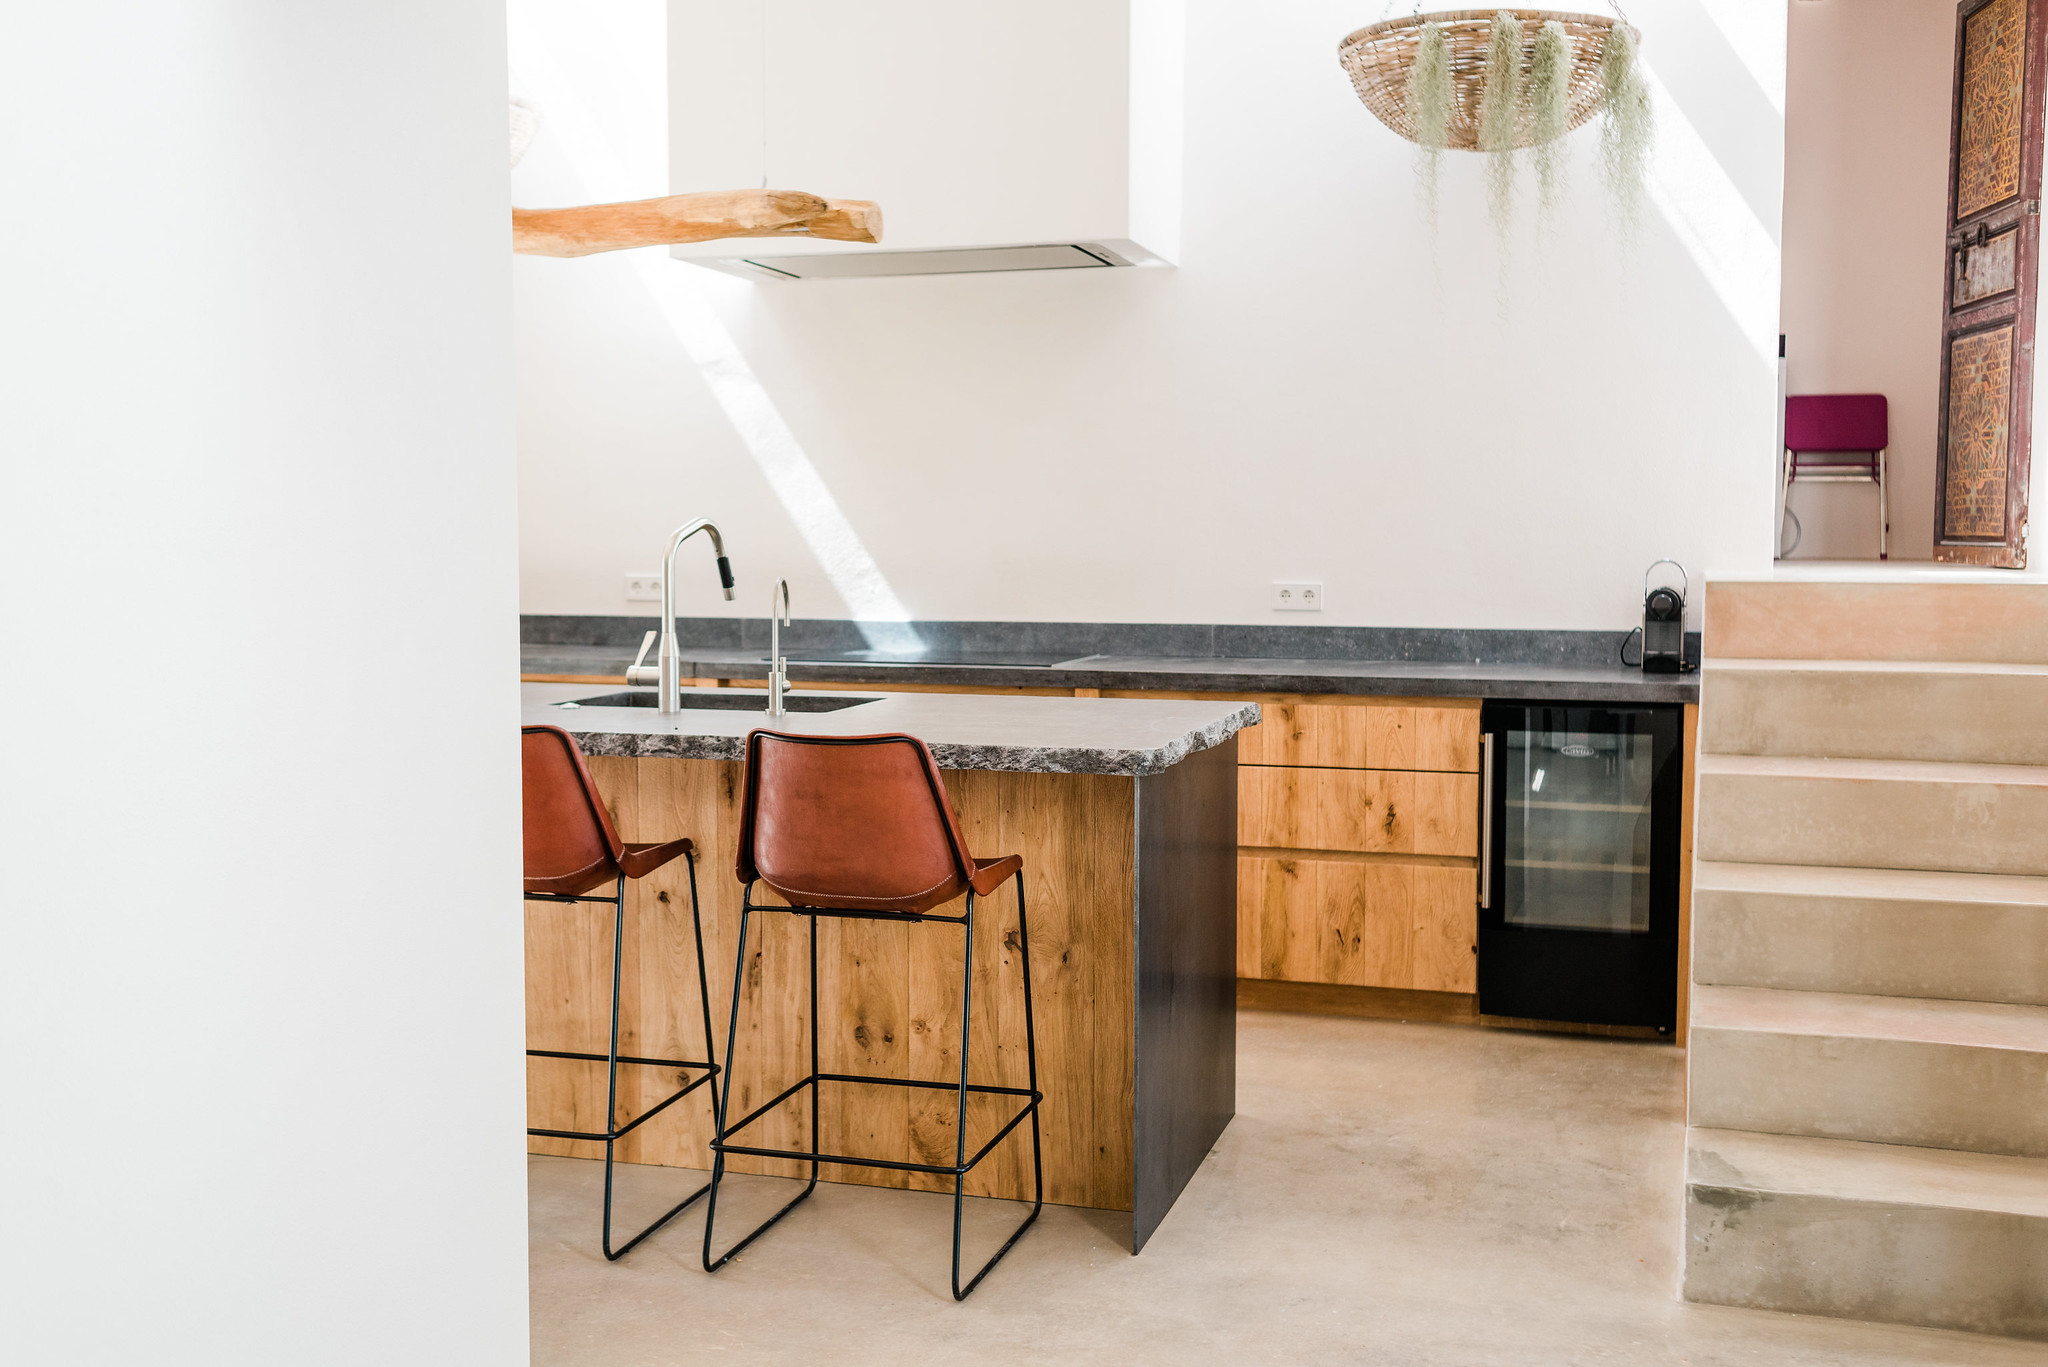 https://www.white-ibiza.com/wp-content/uploads/2020/06/white-ibiza-villas-can-calma-interior-kitchen3.jpg